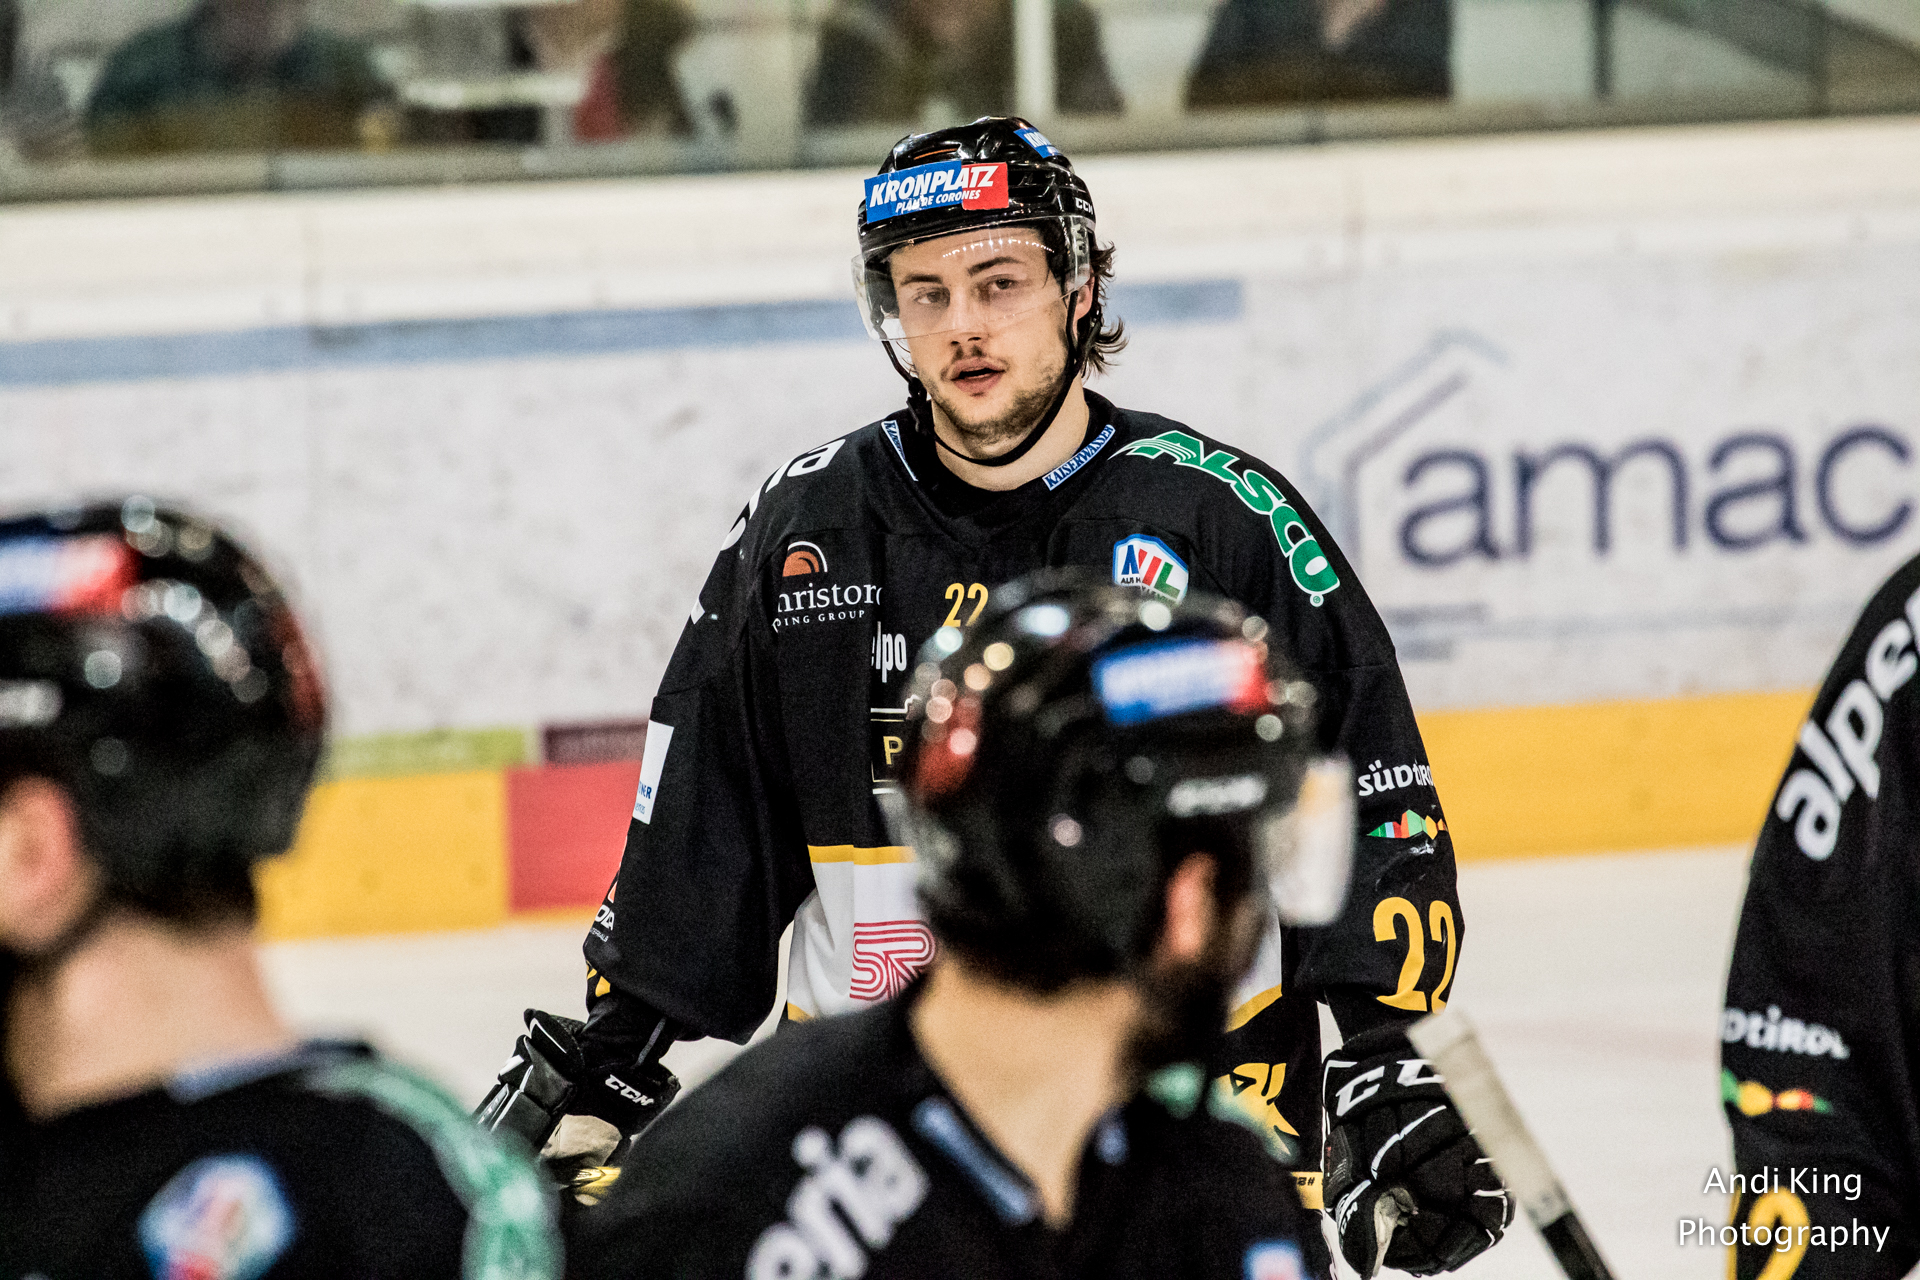 Playoffs2019_Brunico vs Jesenice _ 5/04/2019 ©AKphoto